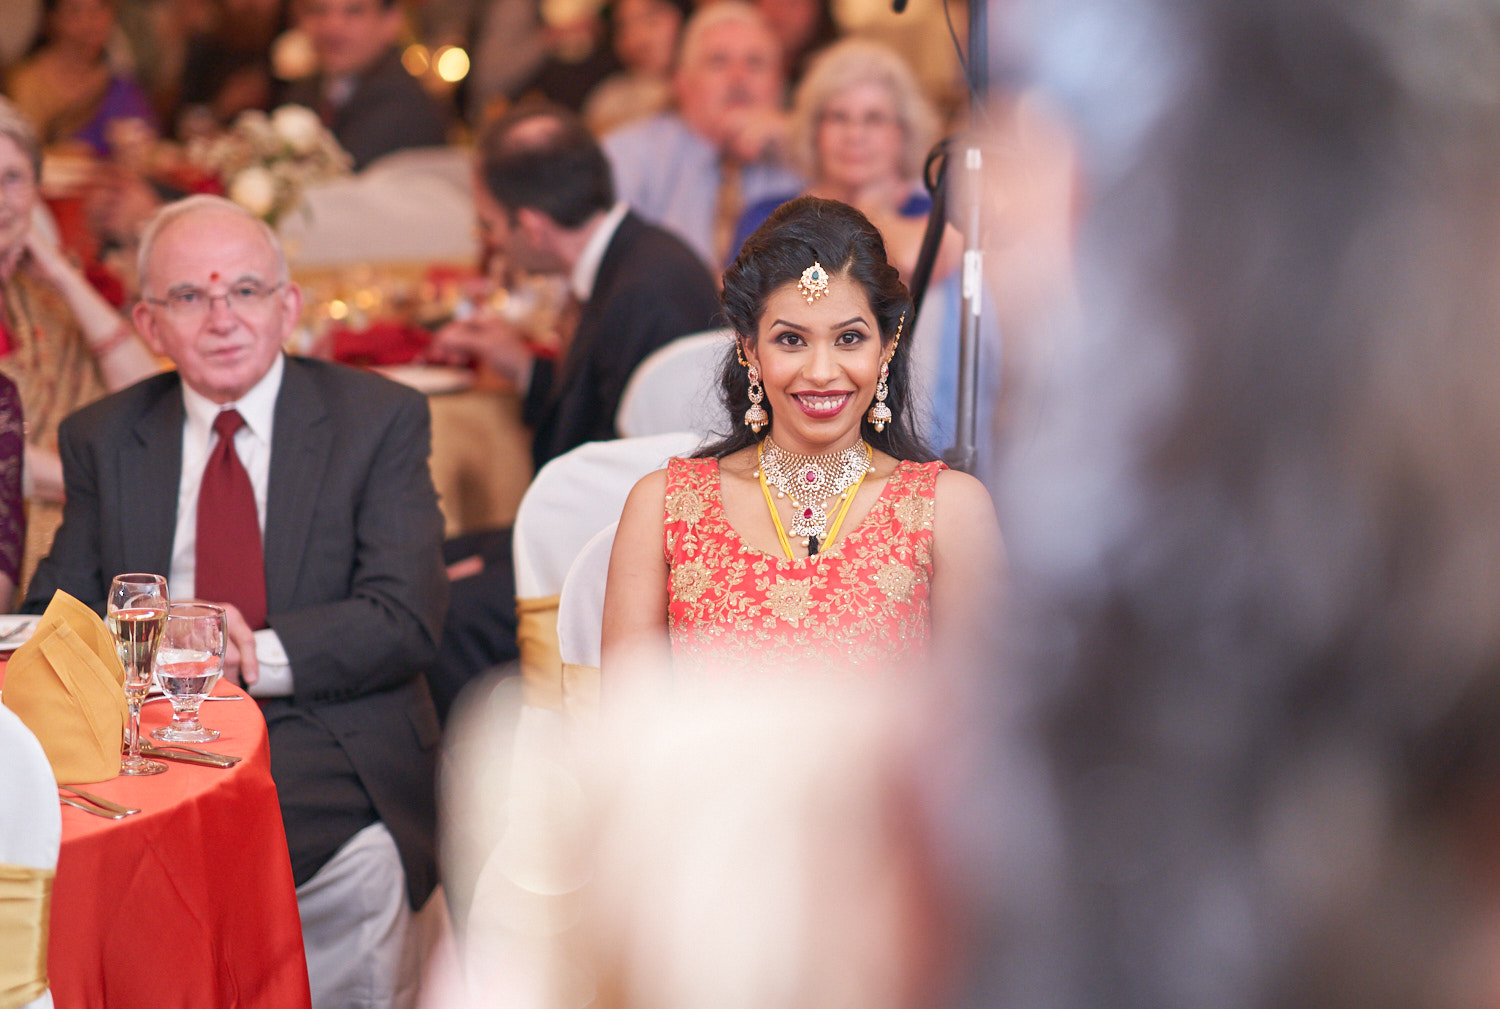 Look at the bride's expressions…priceless!